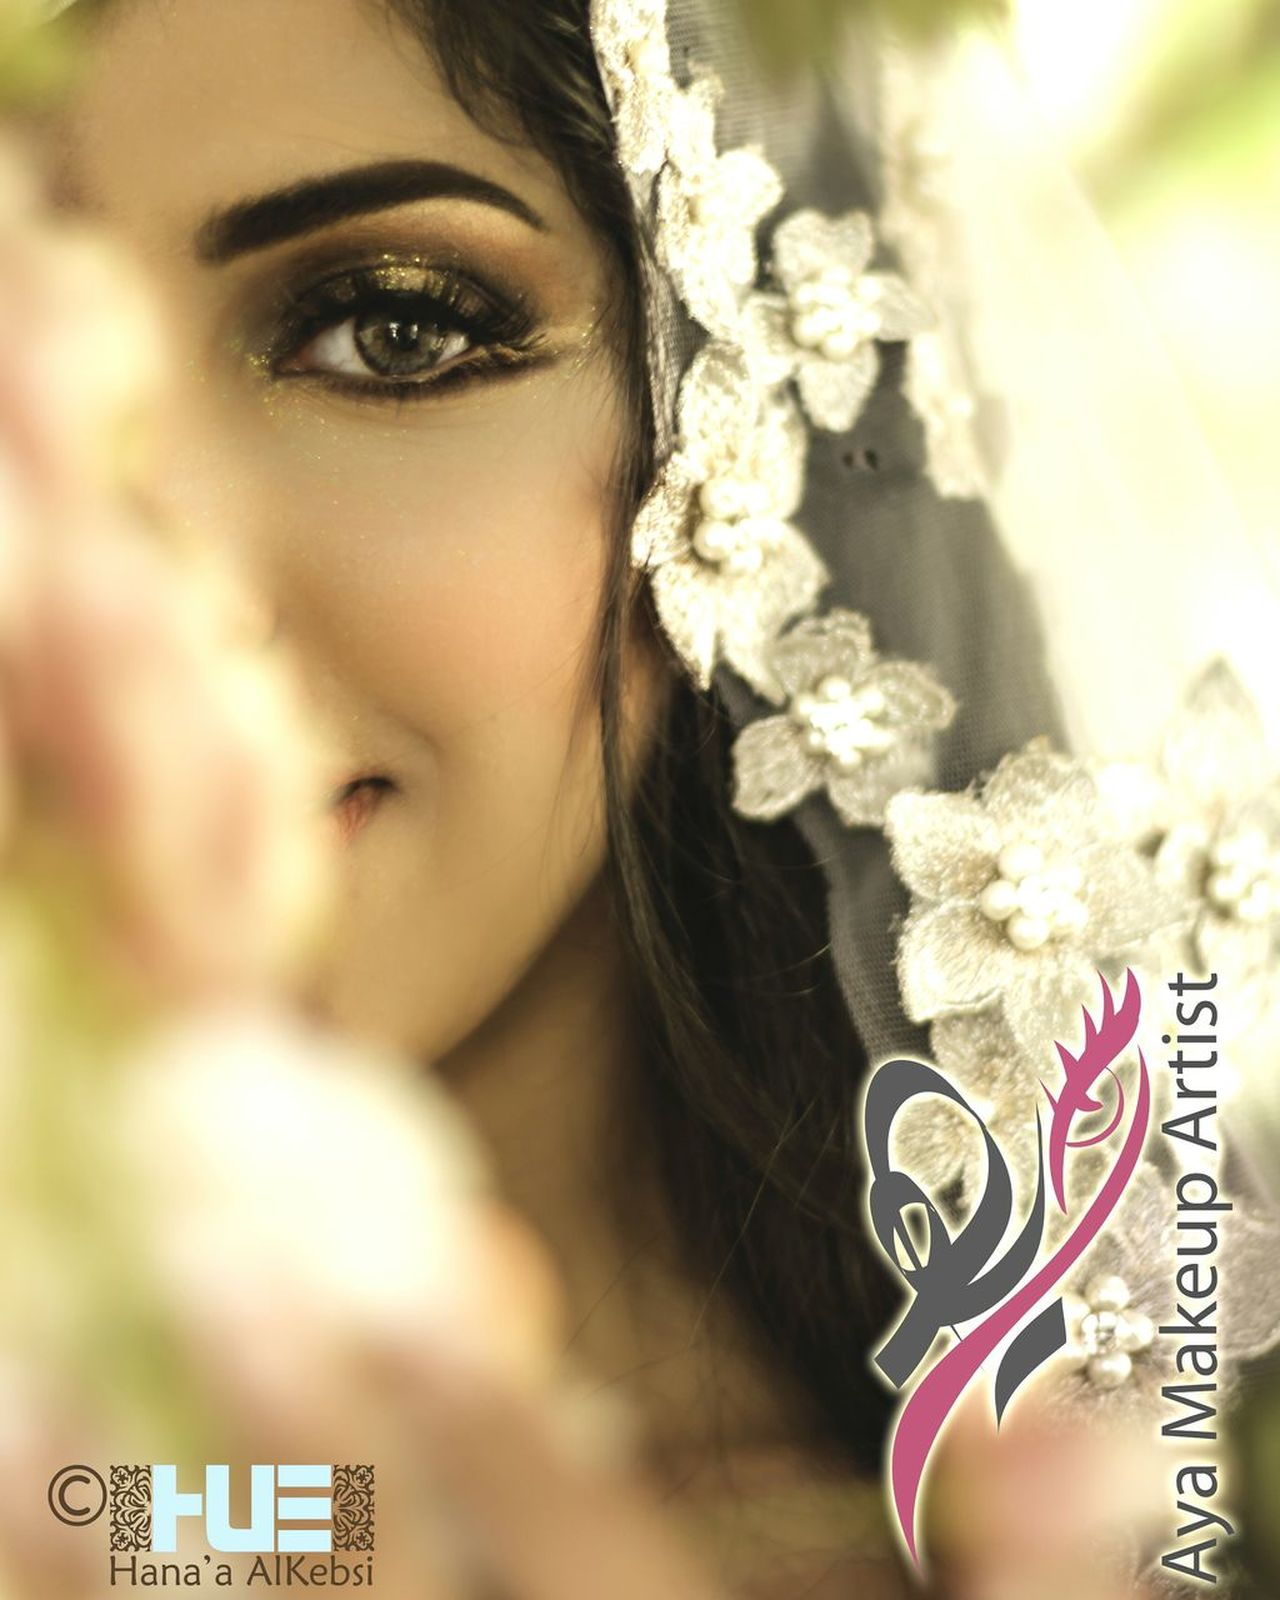 Yemen 2017 bride makeup and style by me One Young Woman Only Beauty Young Women Portrait Makeup On Point Makeupaddict Makeupaddicted Beautiful People Makeupbyme Makeuptransformation Makeupideas Blush - Make-up MakeupJunkie MakeupArt Eyeshadow Make Love Not War Makeup By Me Stage Make-up Human Lips Beautiful Woman Cultures Looking At Camera Makeup ♥ Makeup Time Makeupartist